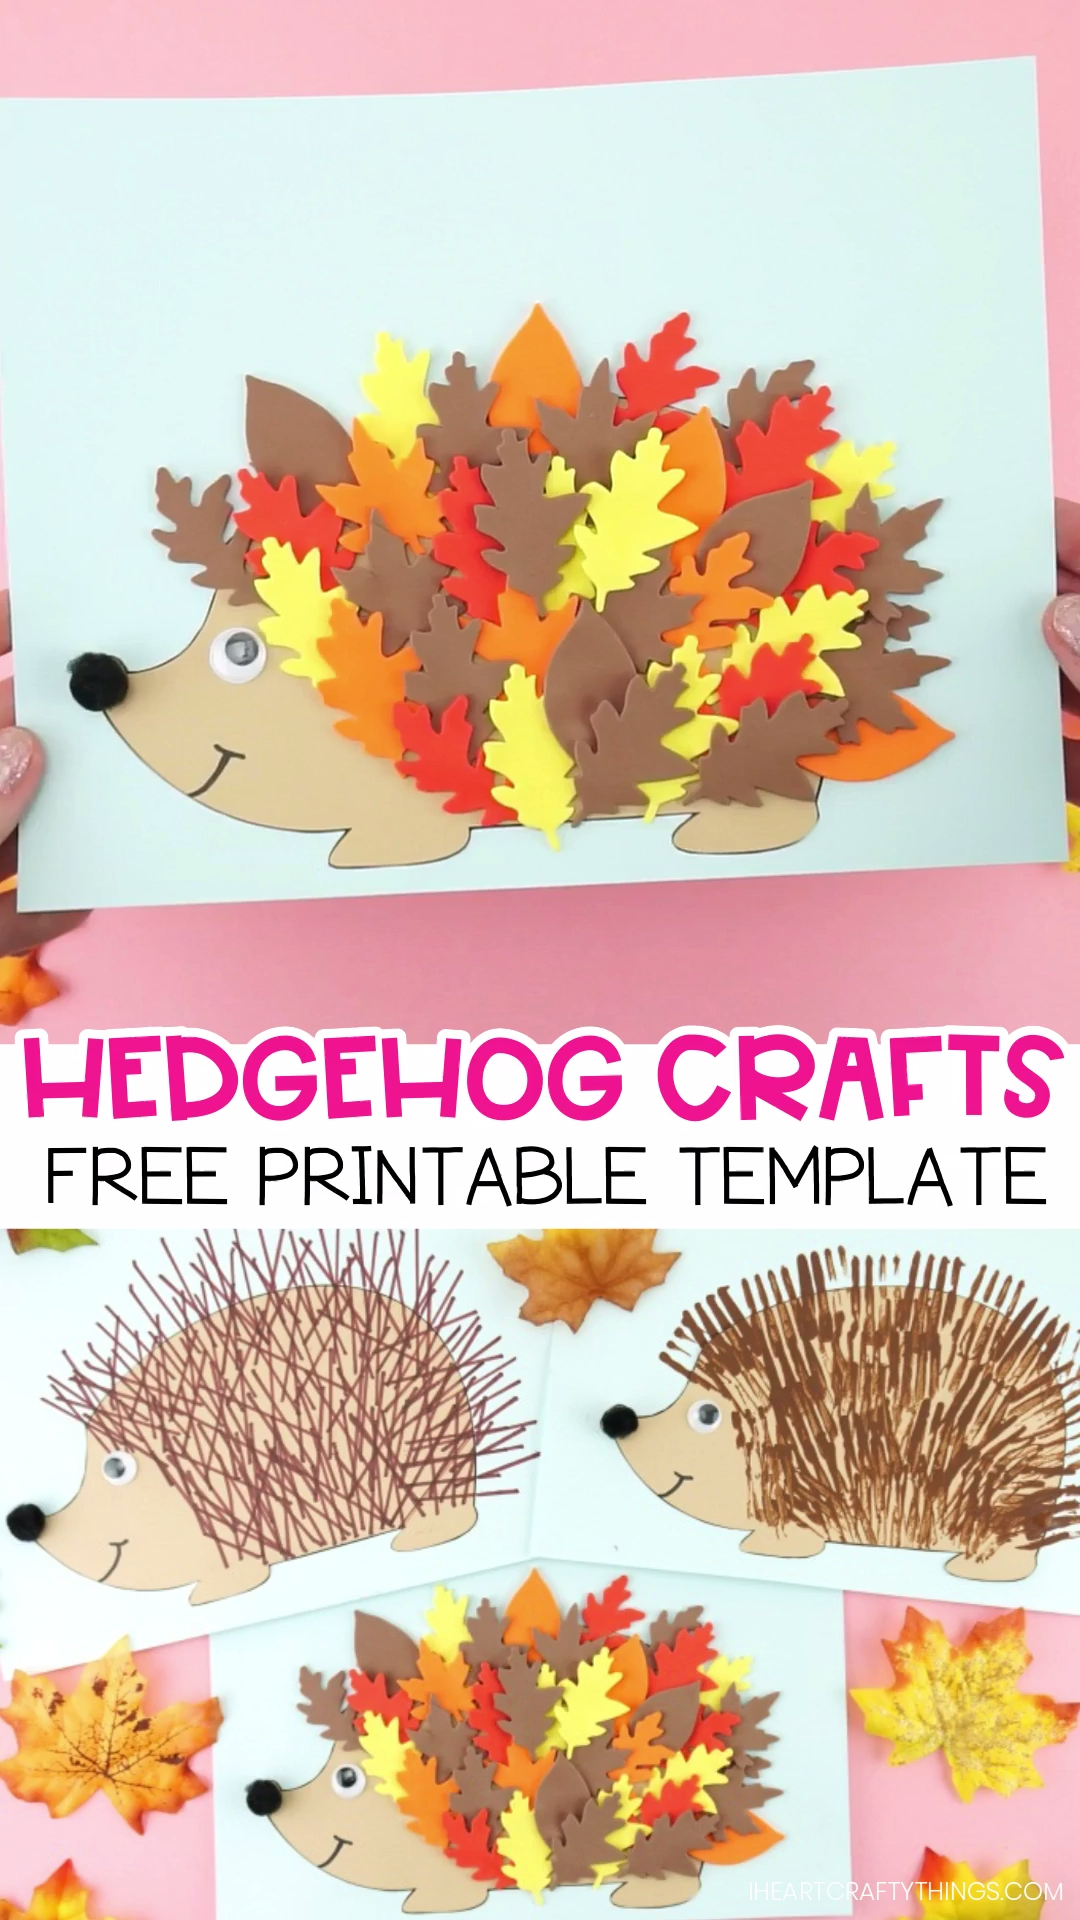 3 fun and easy ways to use our free hedgehog template to create cute hedgehog crafts for kids. Fun fall crafts for kids -Leaf hedgehog, fork painted hedgehog and ruler lines hedgehog craft. Cute woodland animal crafts for kids. #iheartcraftythings